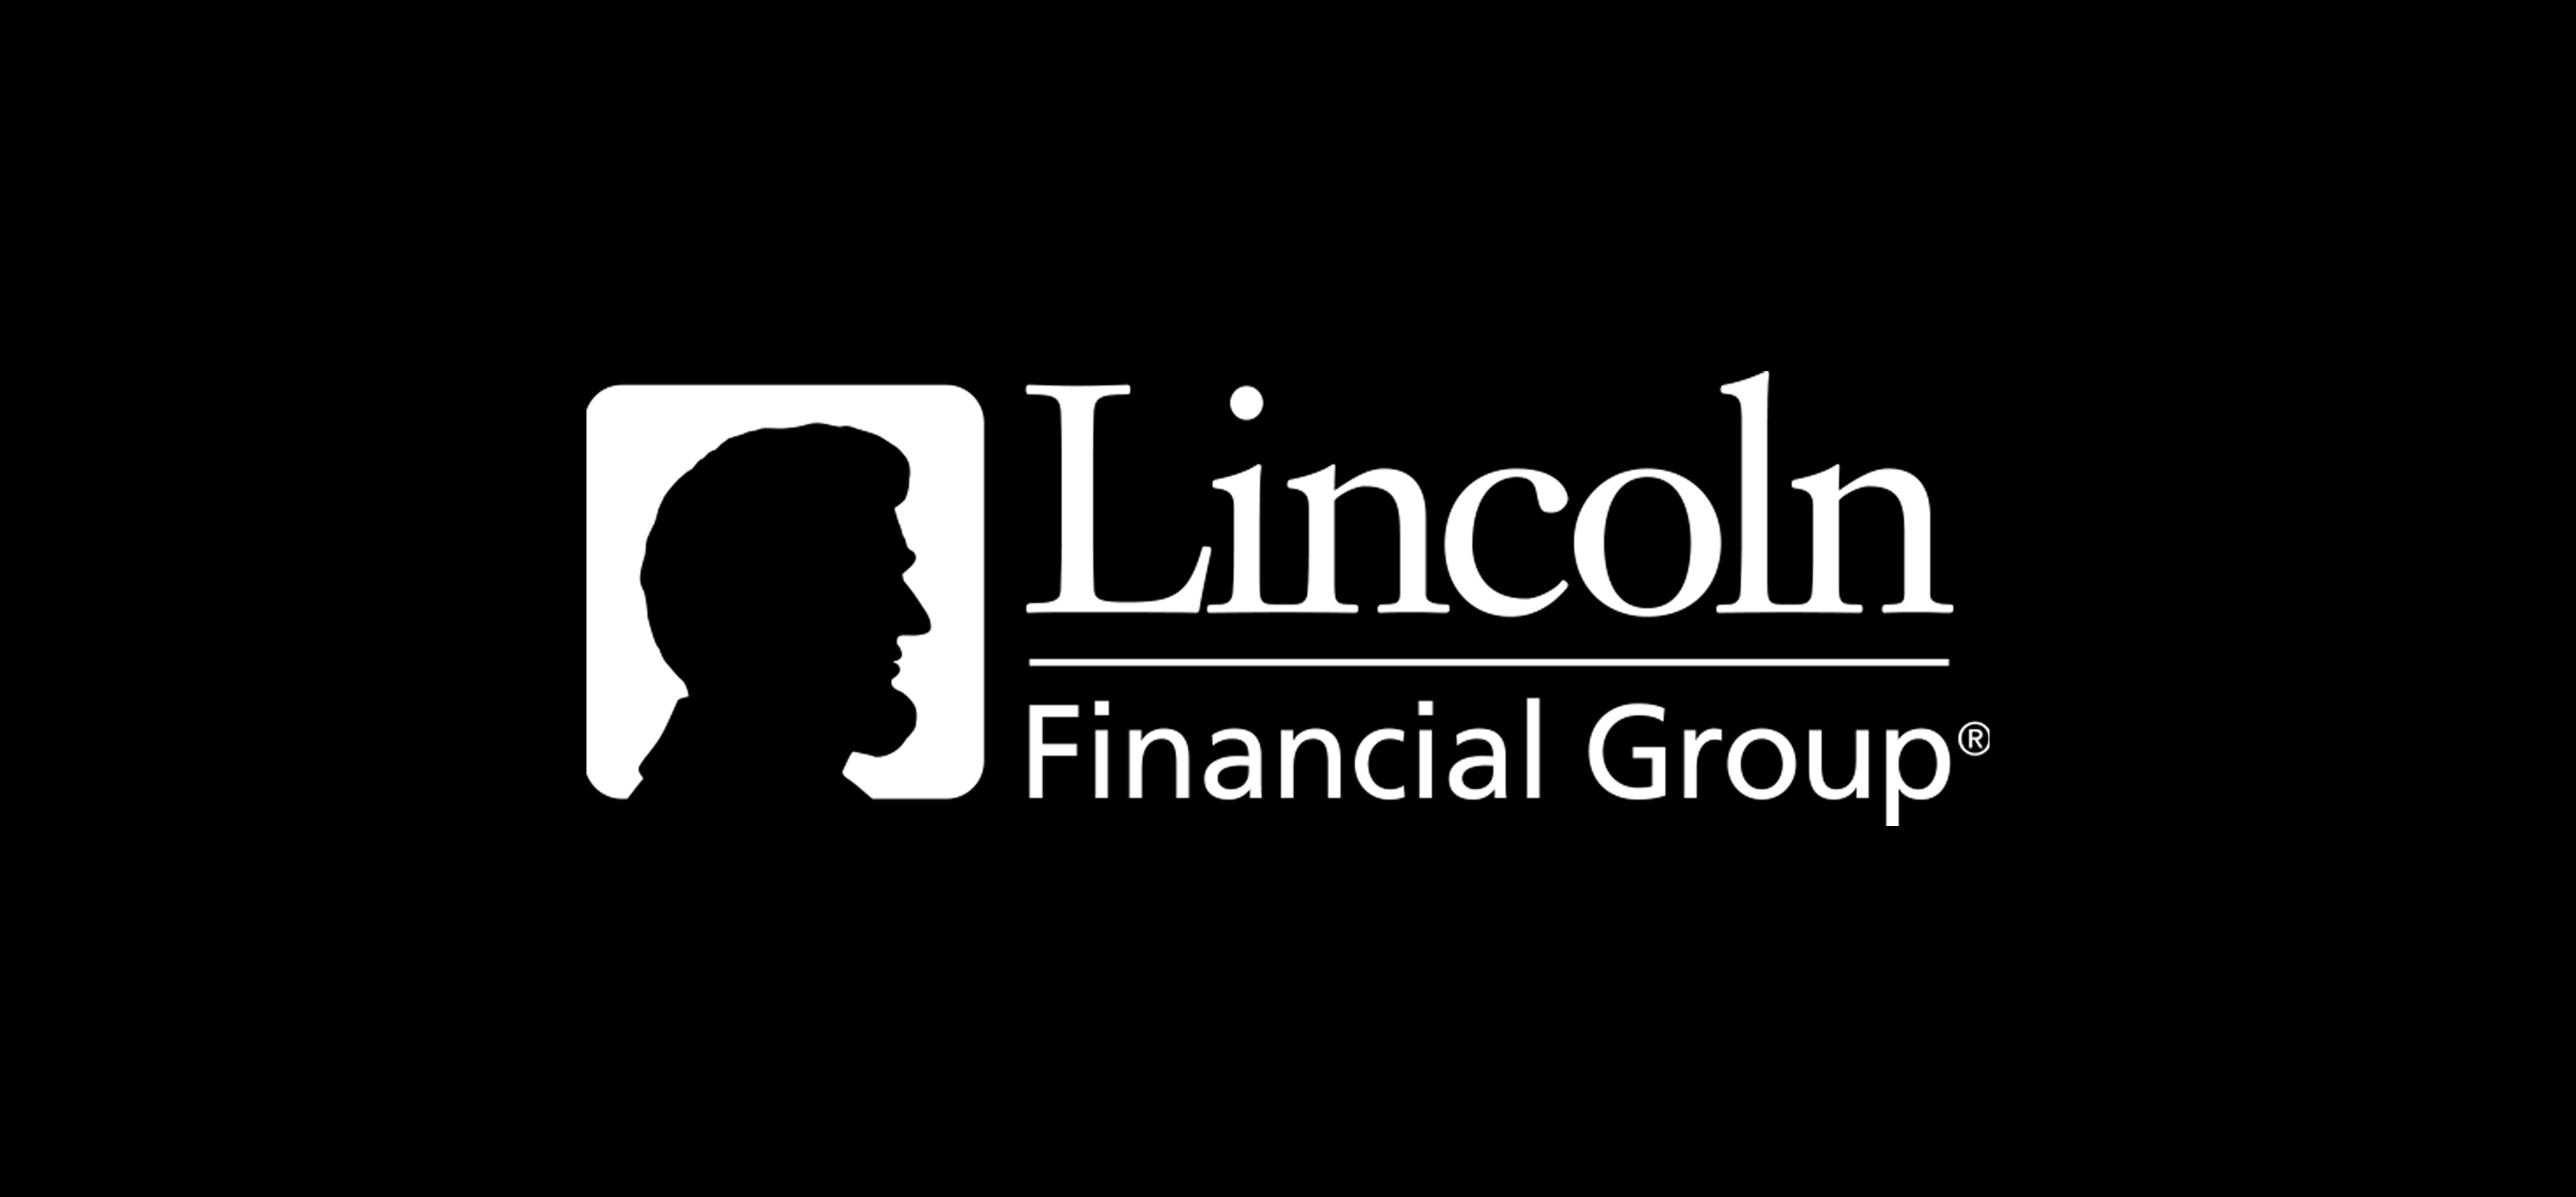 Lincoln_Financial_Logo_BW